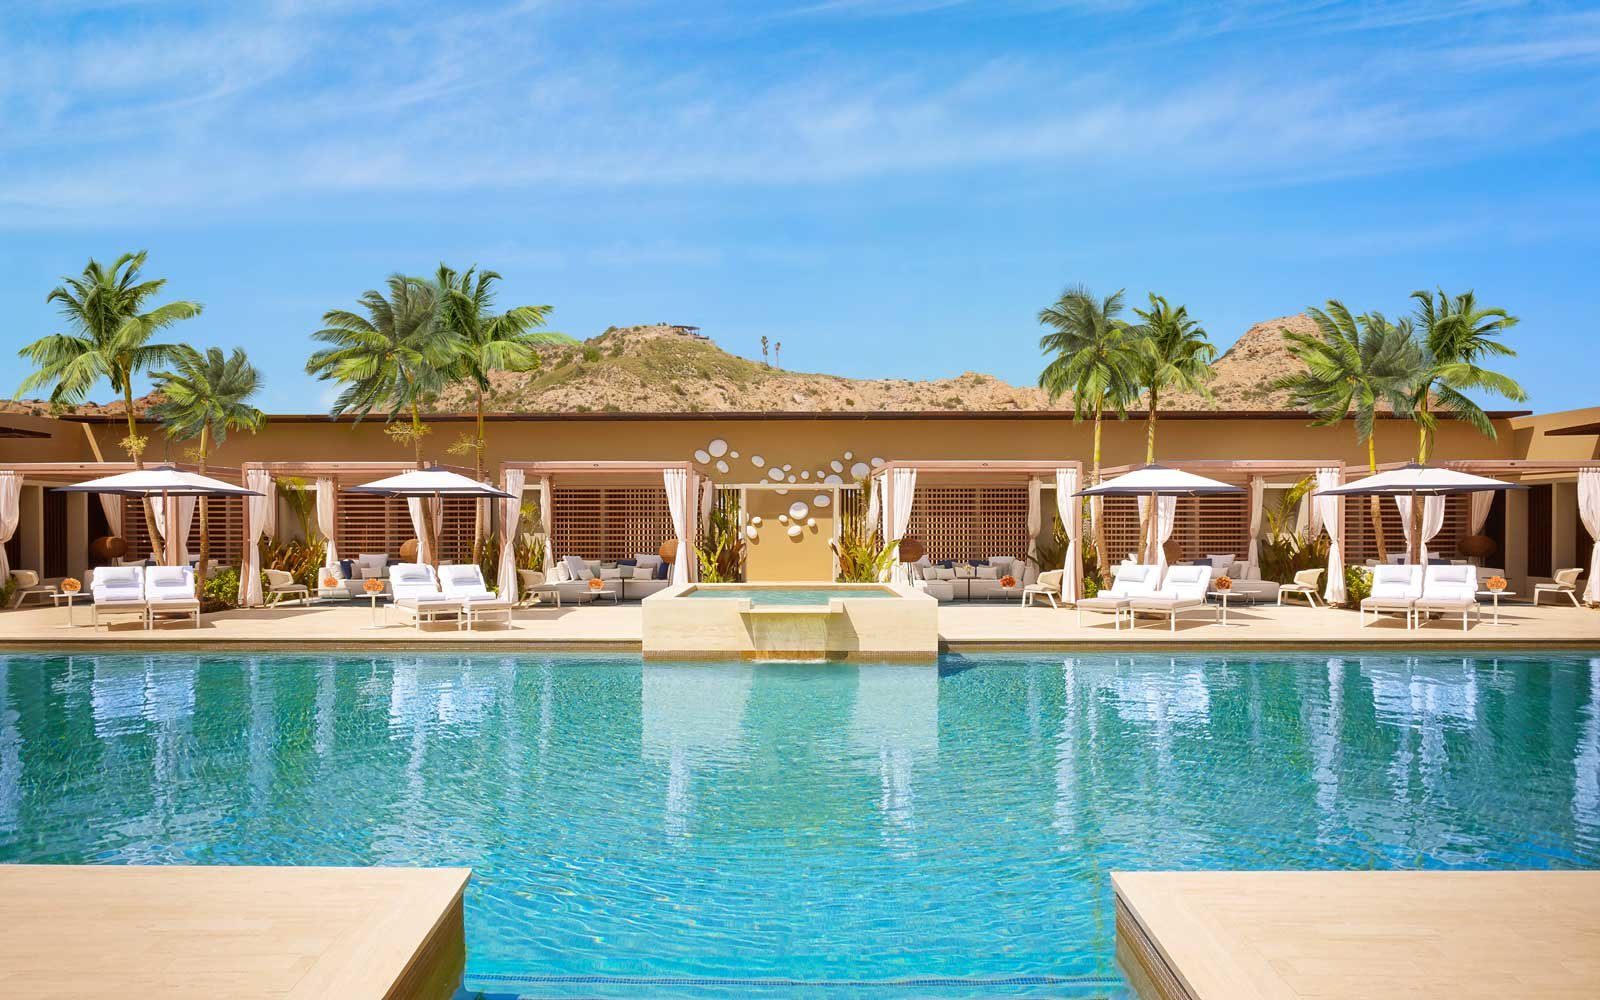 Pool at the Montage Los Cabos Hotel in Mexico